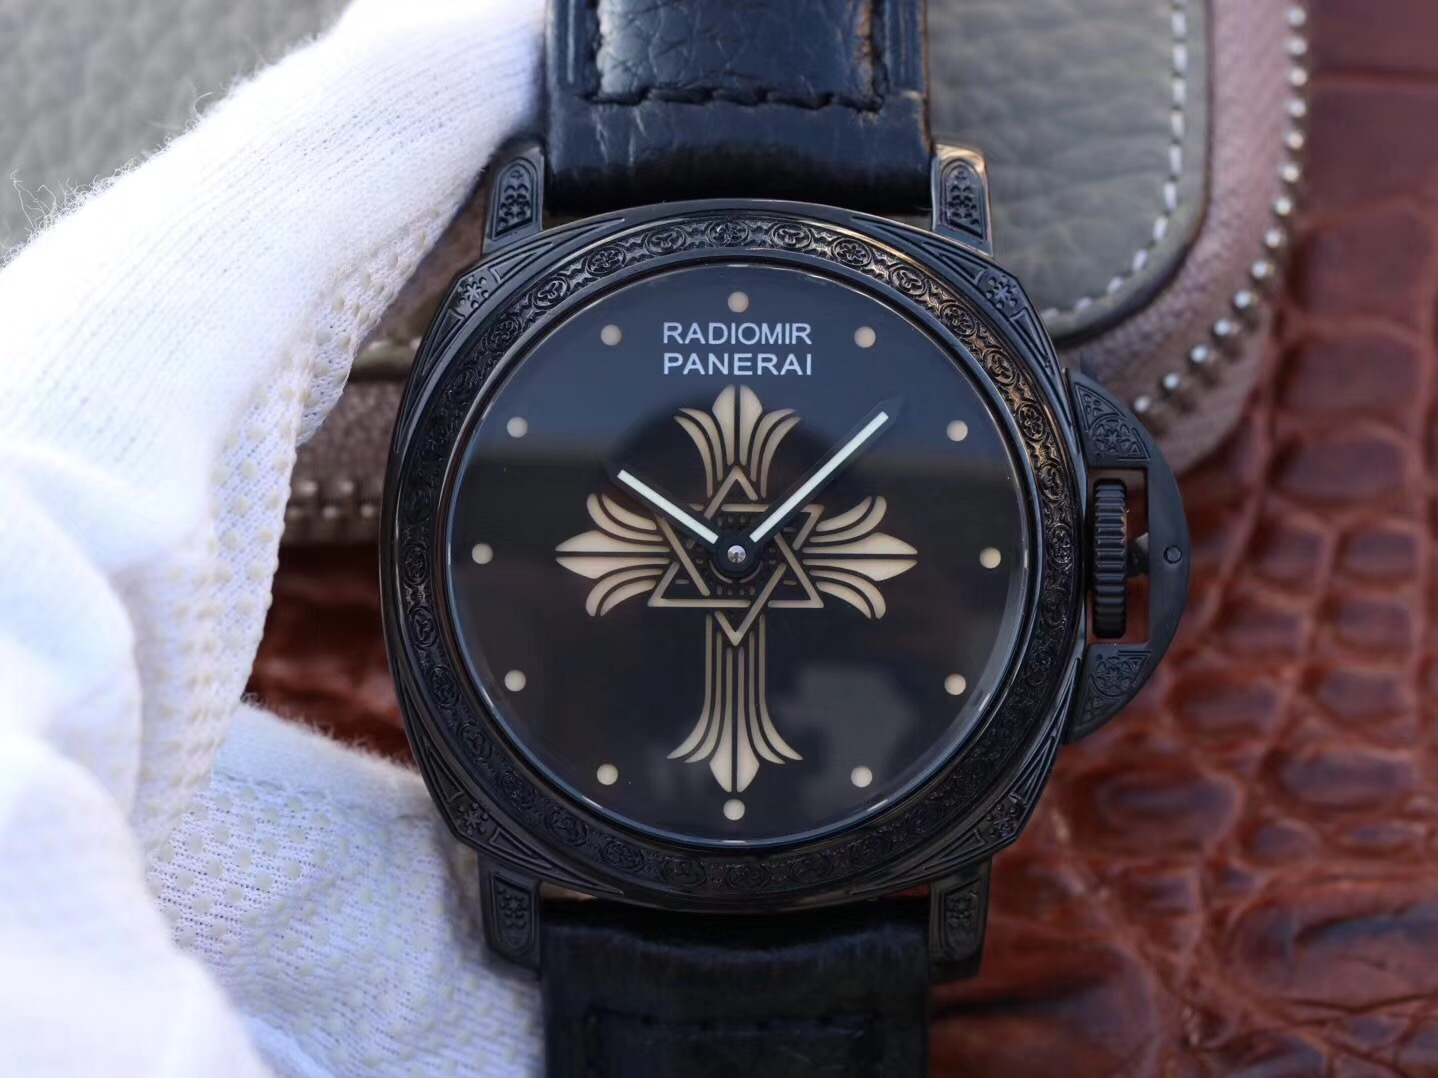 Copy Panerai Black Dial Carving Black Case Swiss Watch